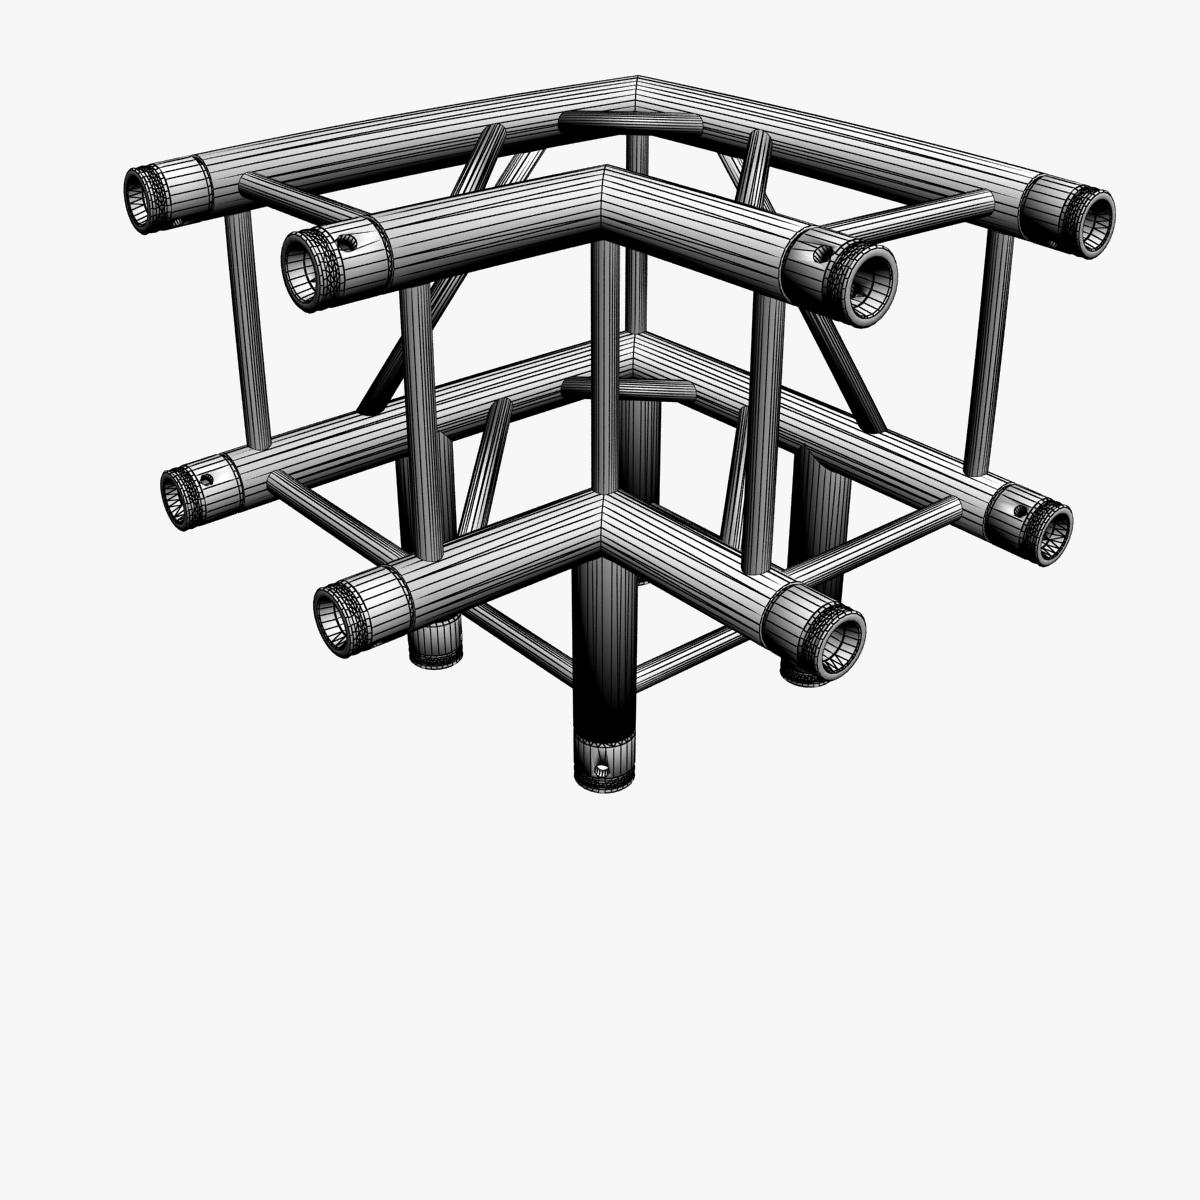 square truss standard (collection 24 modular) 3d model 3ds max dxf fbx c4d dae  texture obj 216365